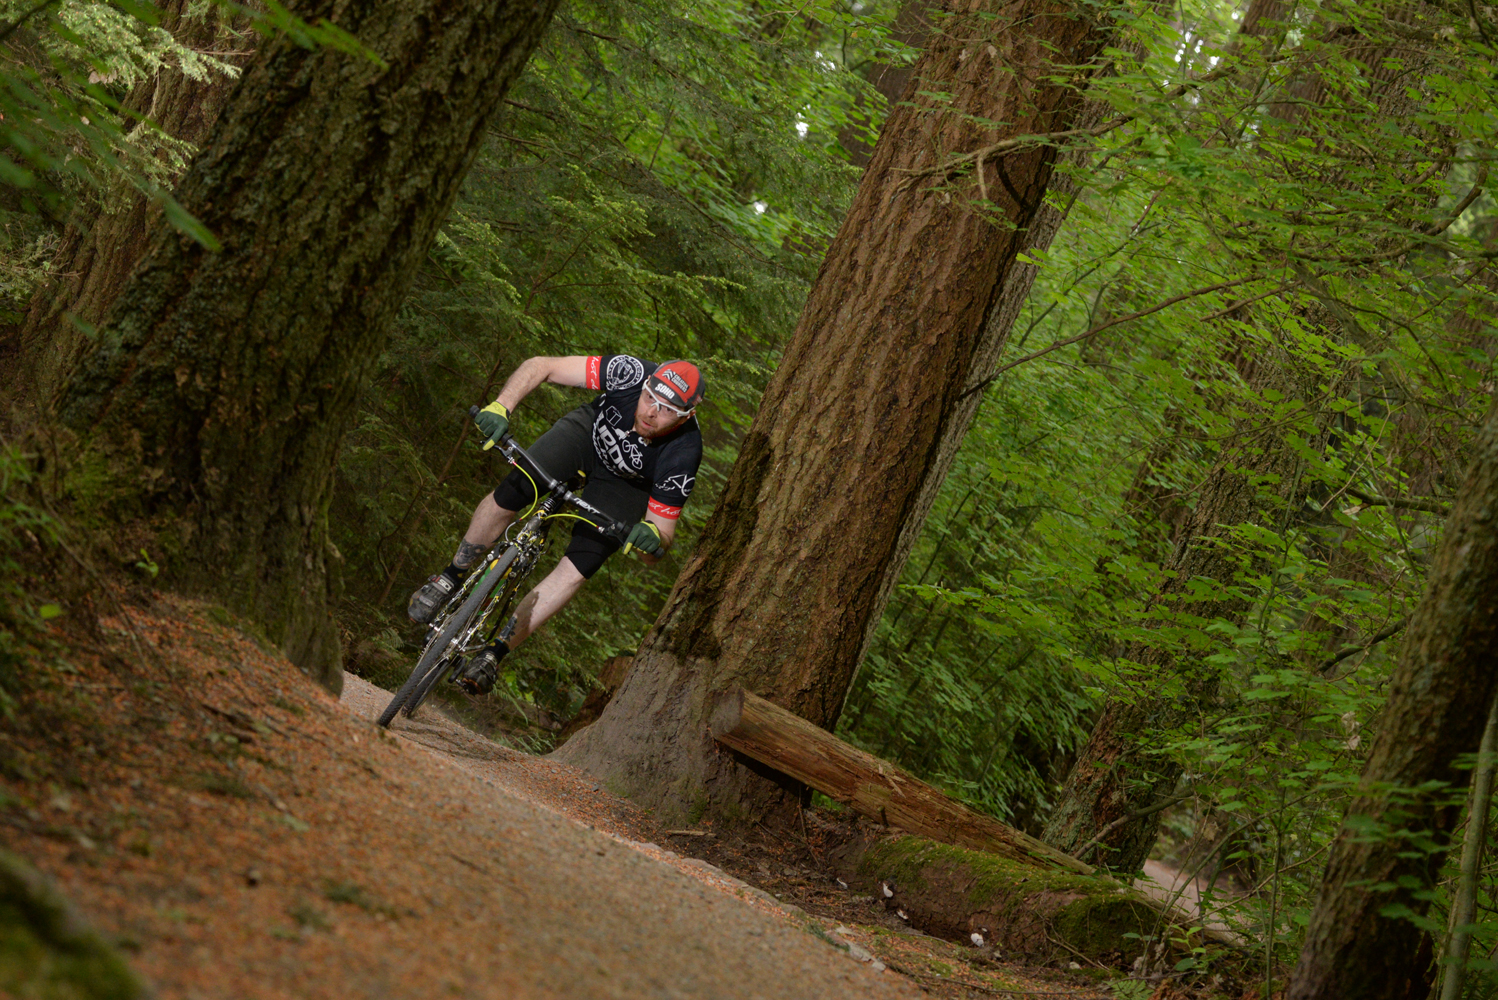 Ross  riding his SSCX through the woods at UBC. Unfortunately I had to take him to get some stitches right after this.